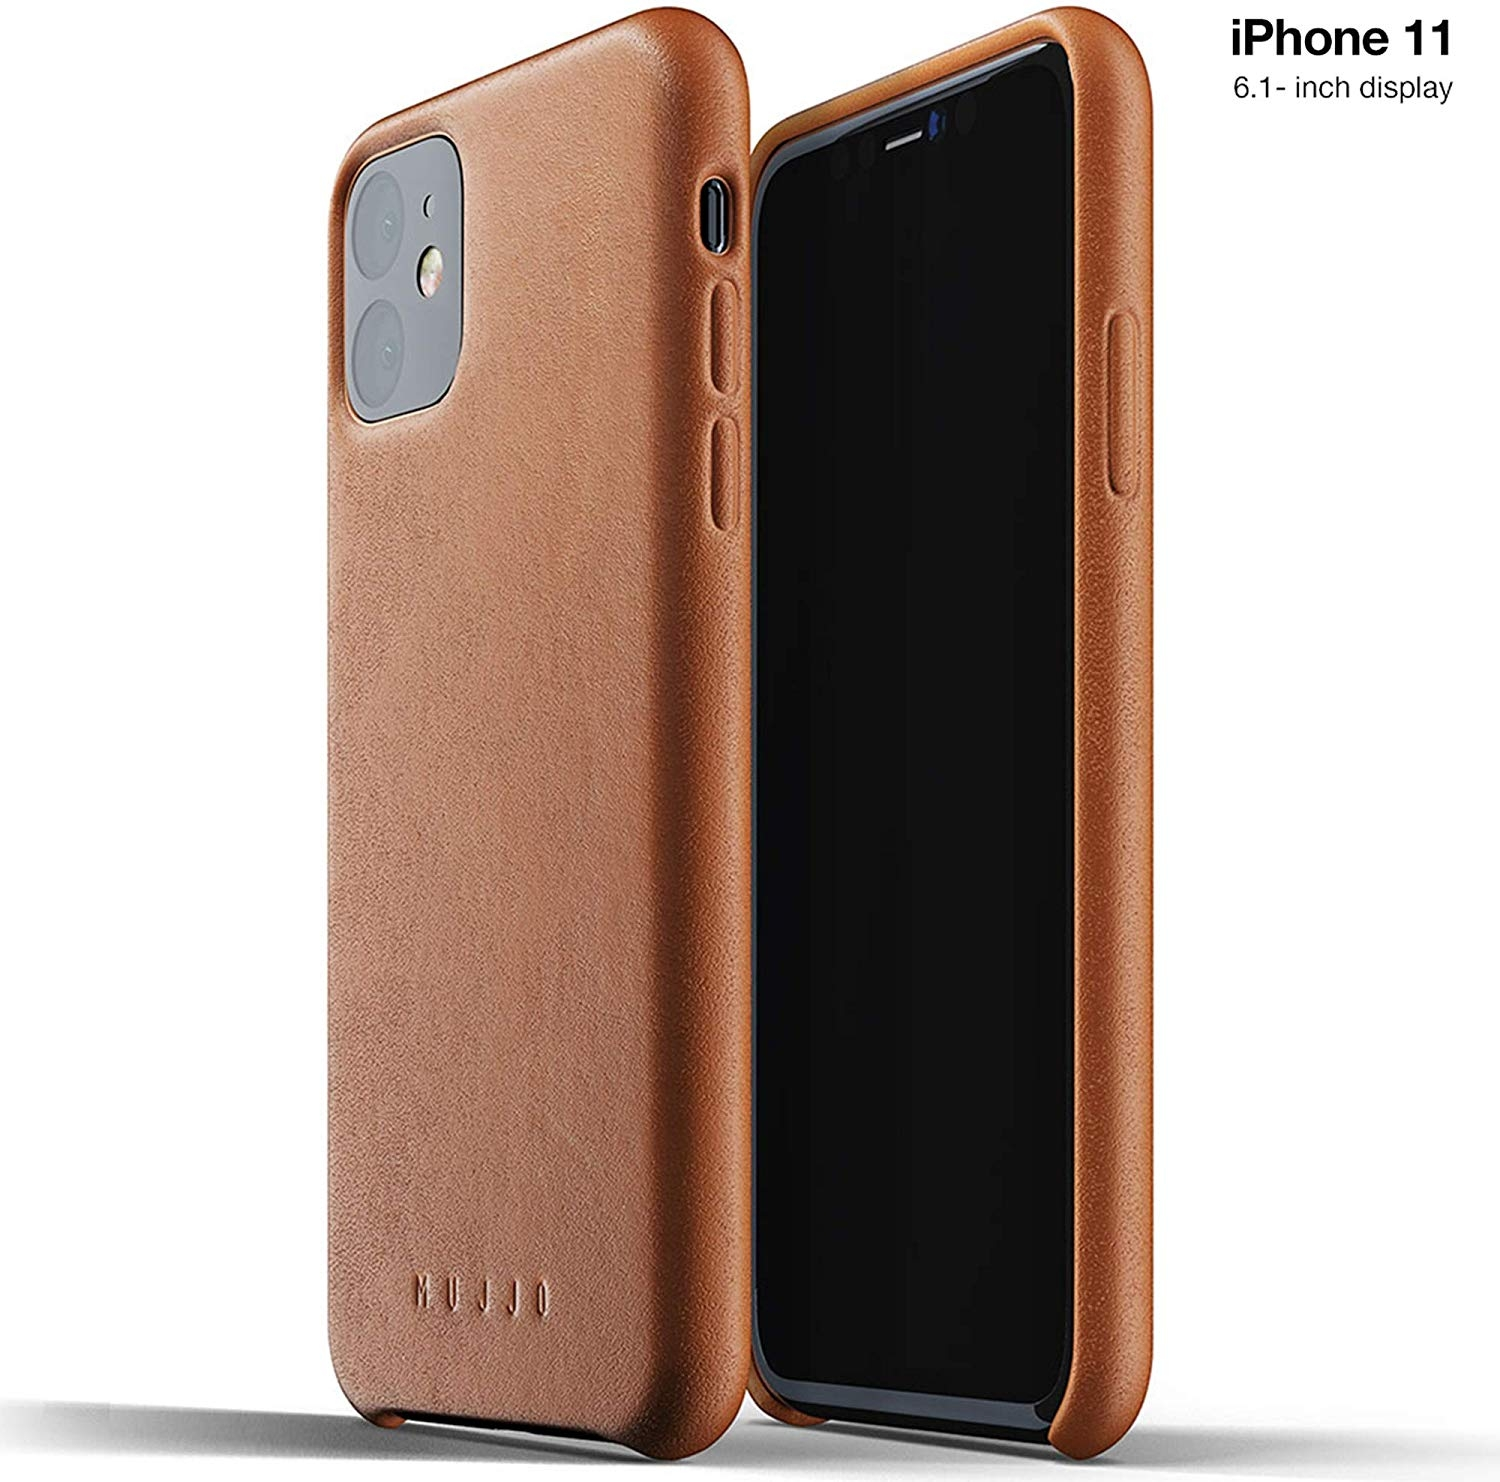 MUJJO Full Leather Case - Δερμάτινη Θήκη iPhone 11 - Tan (MUJJO-CL-005-TN)